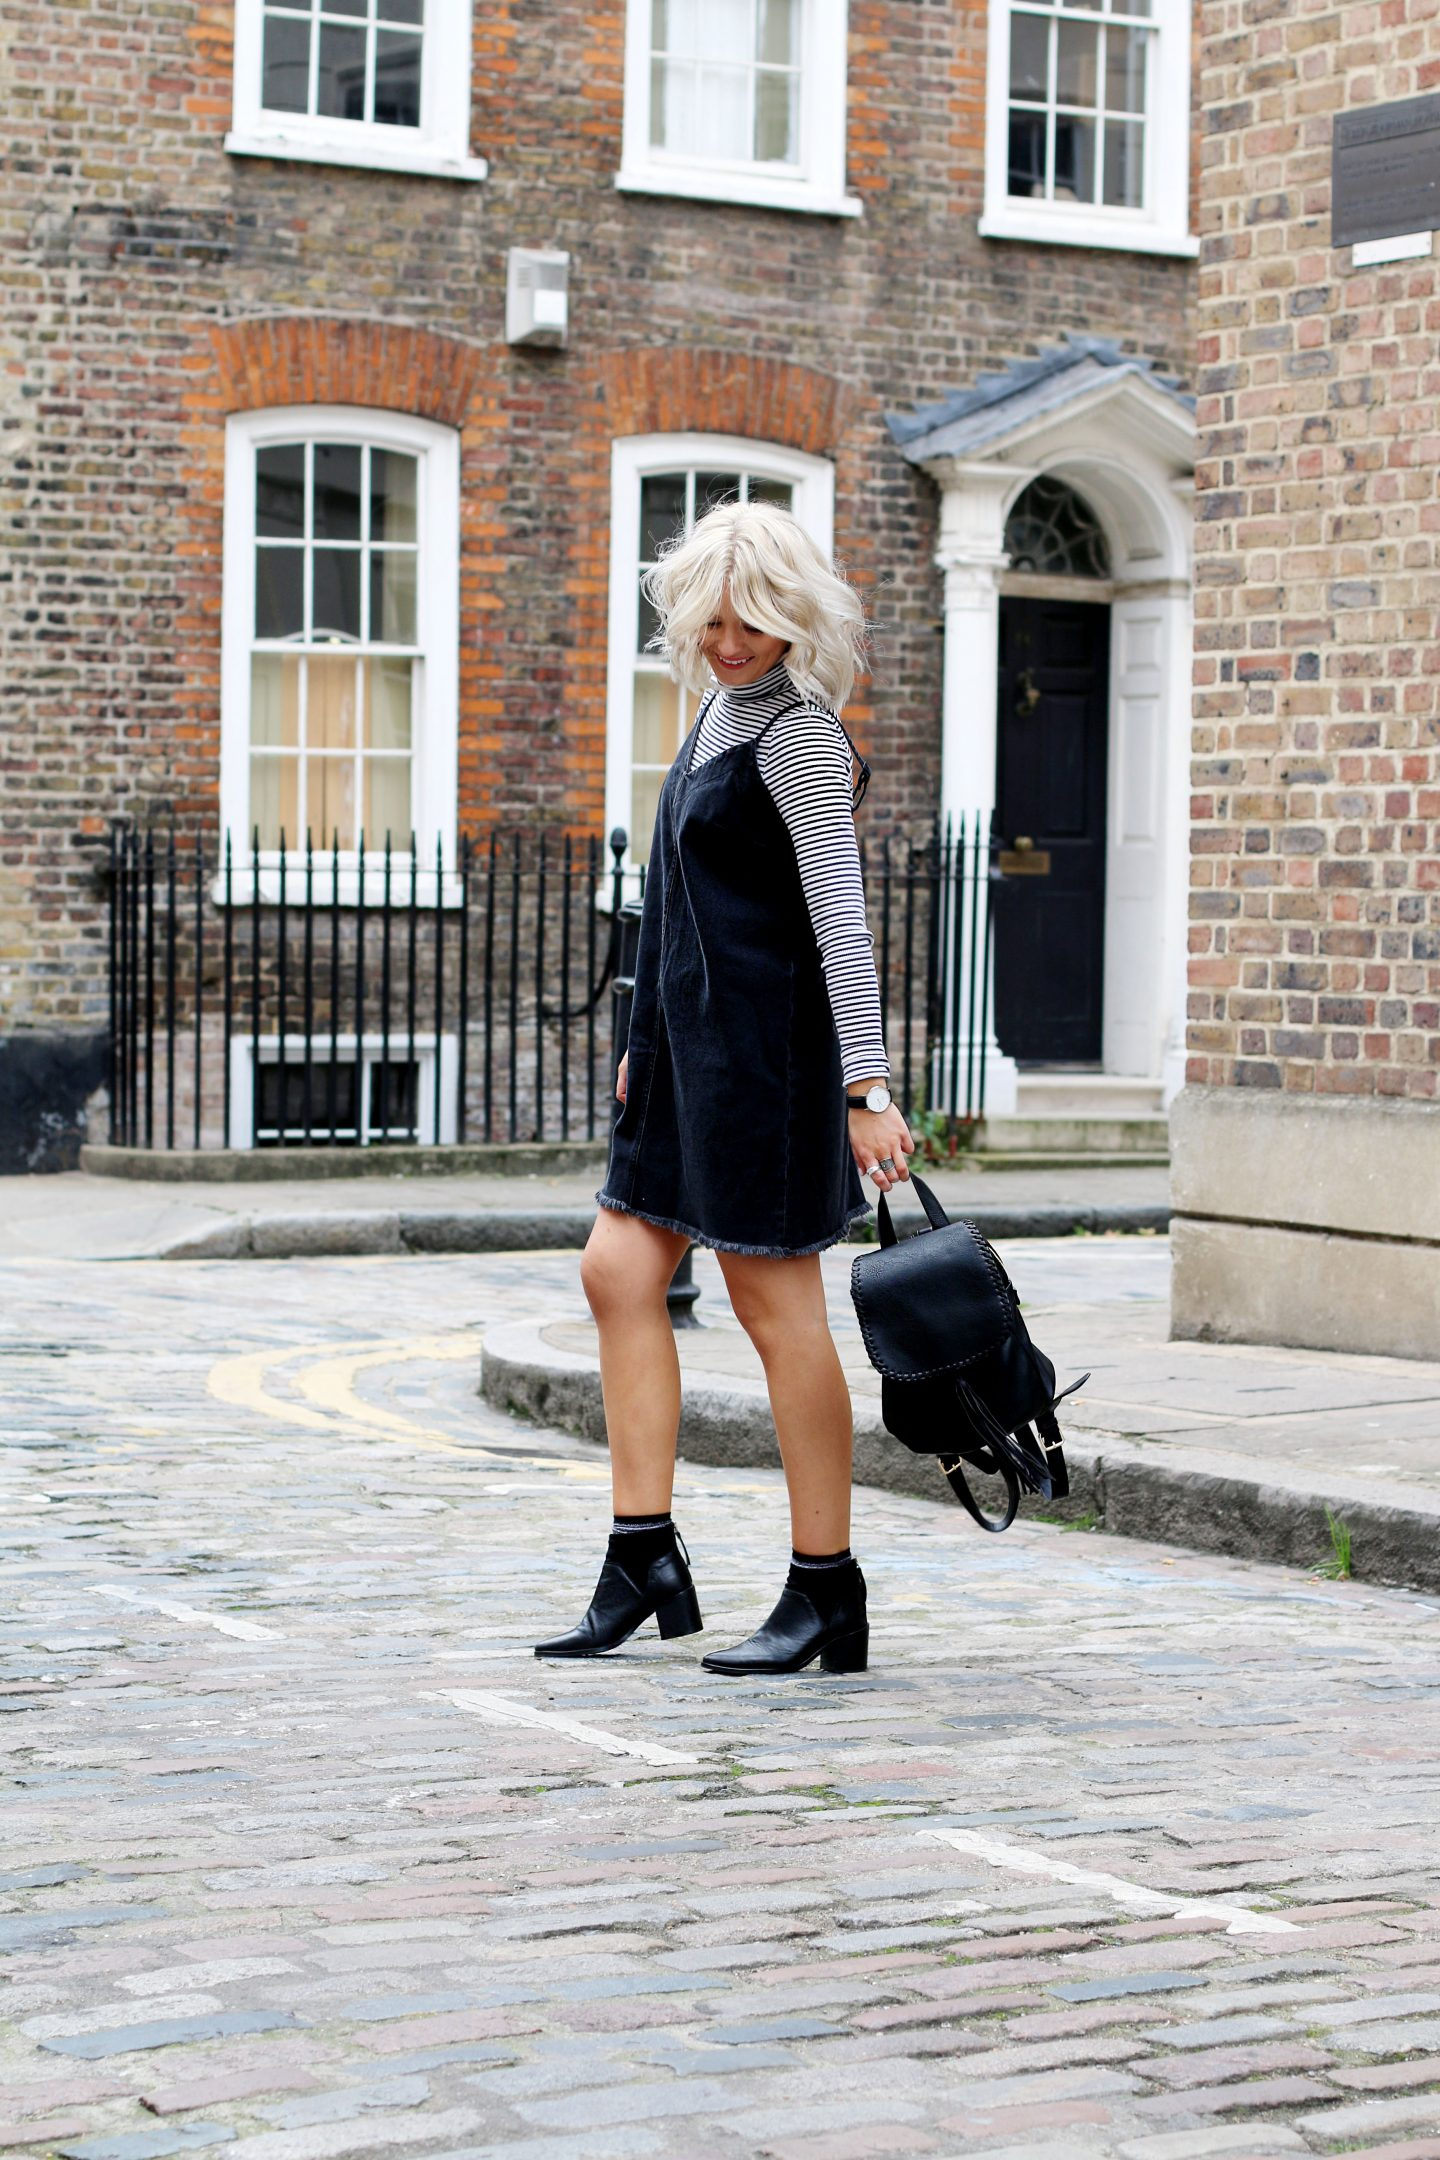 lauras little locket, laura byrnes, street style, denim dress, denim cami dress, stripe polo neck, black ankle boots, polo neck with cami dress, autumnal layering, blonde bob, blonde wavy bob, london style, fashion, style, london blogger, fashion blogger